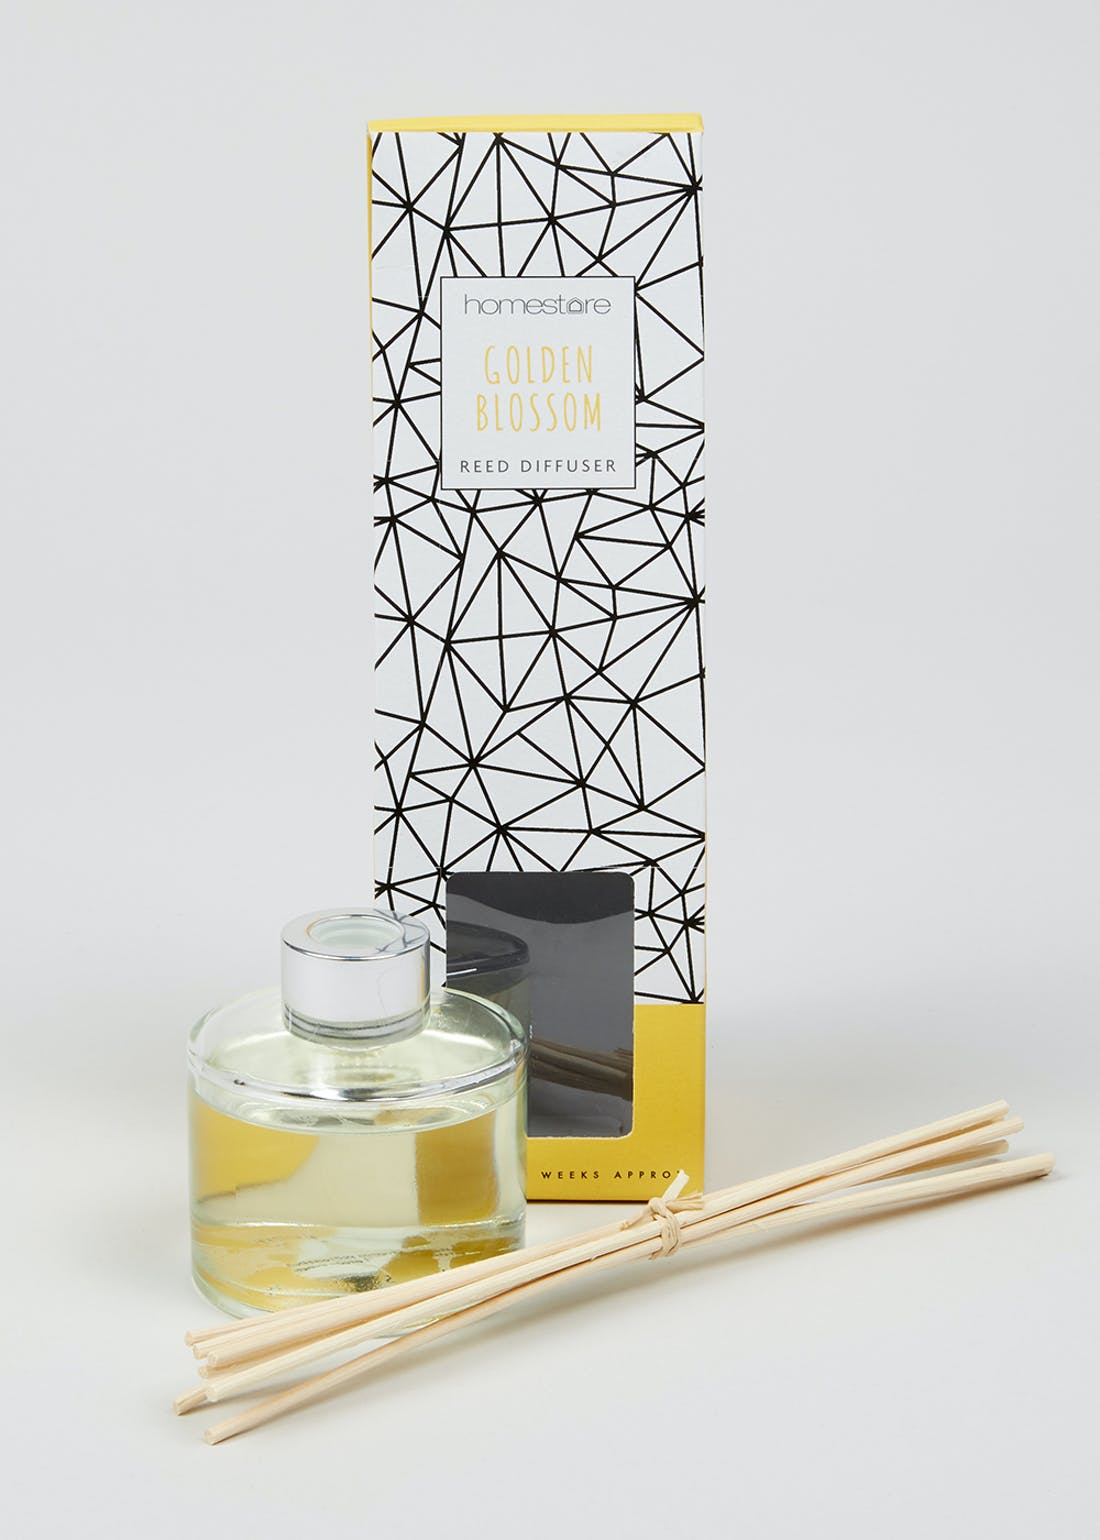 Golden Blossom Reed Diffuser (100ml)